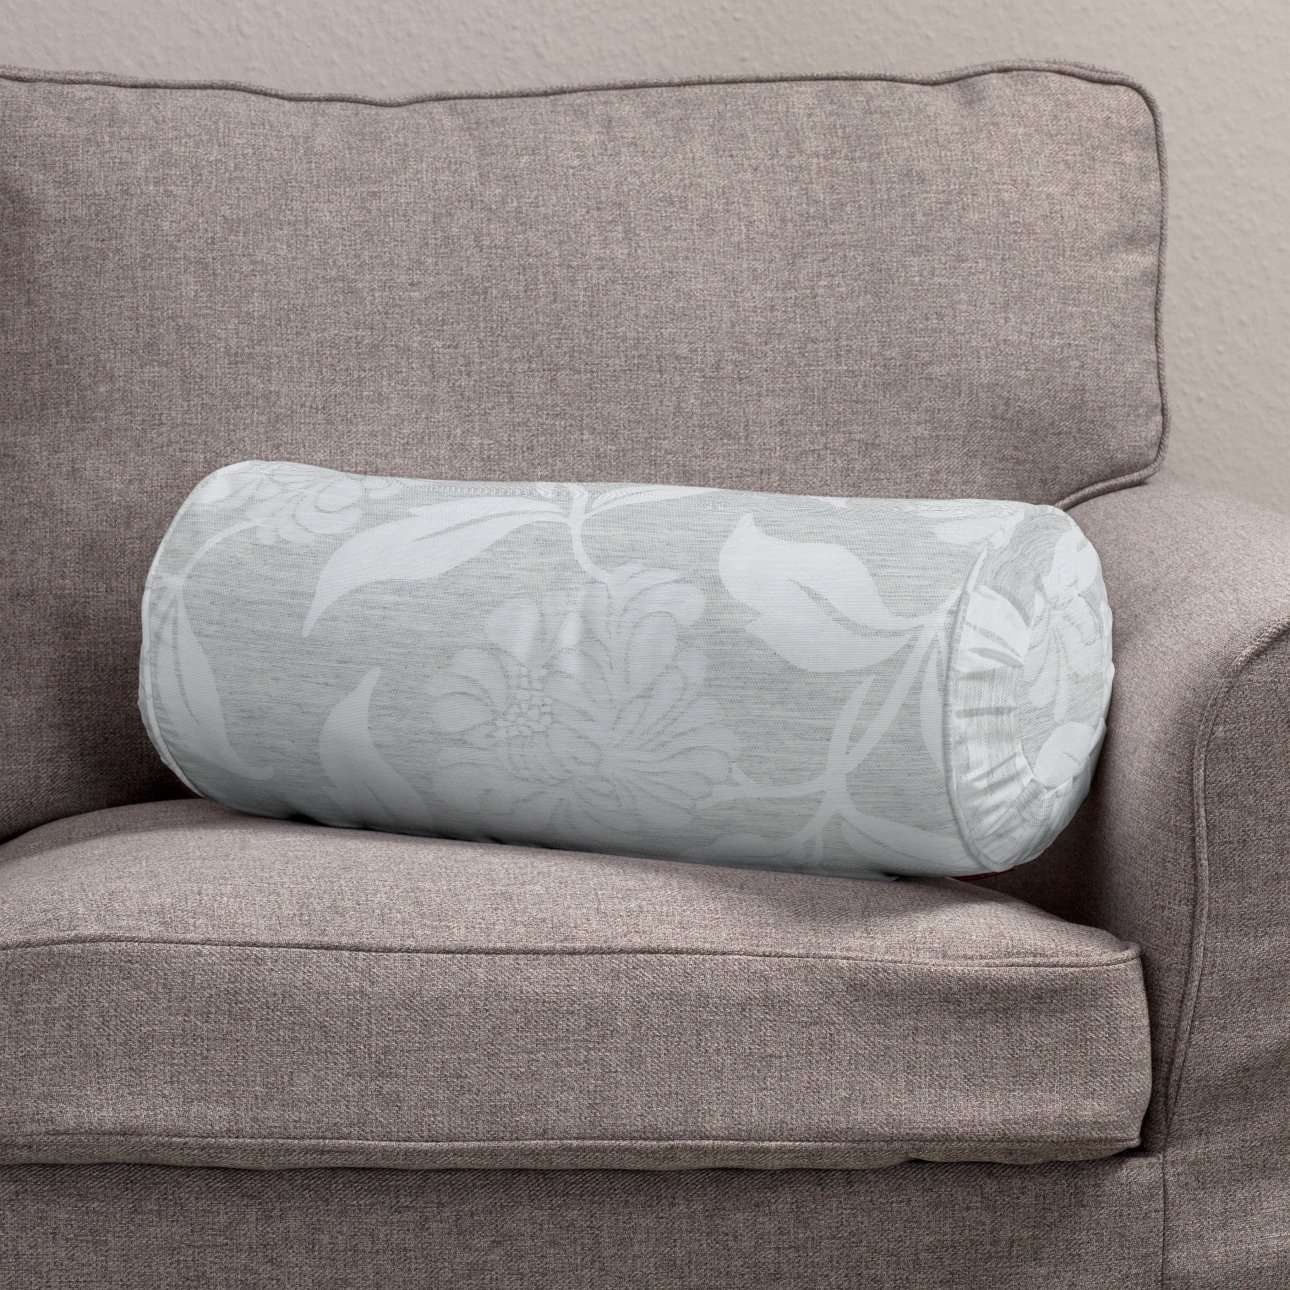 Bolster cushion with pleats in collection Venice, fabric: 140-51